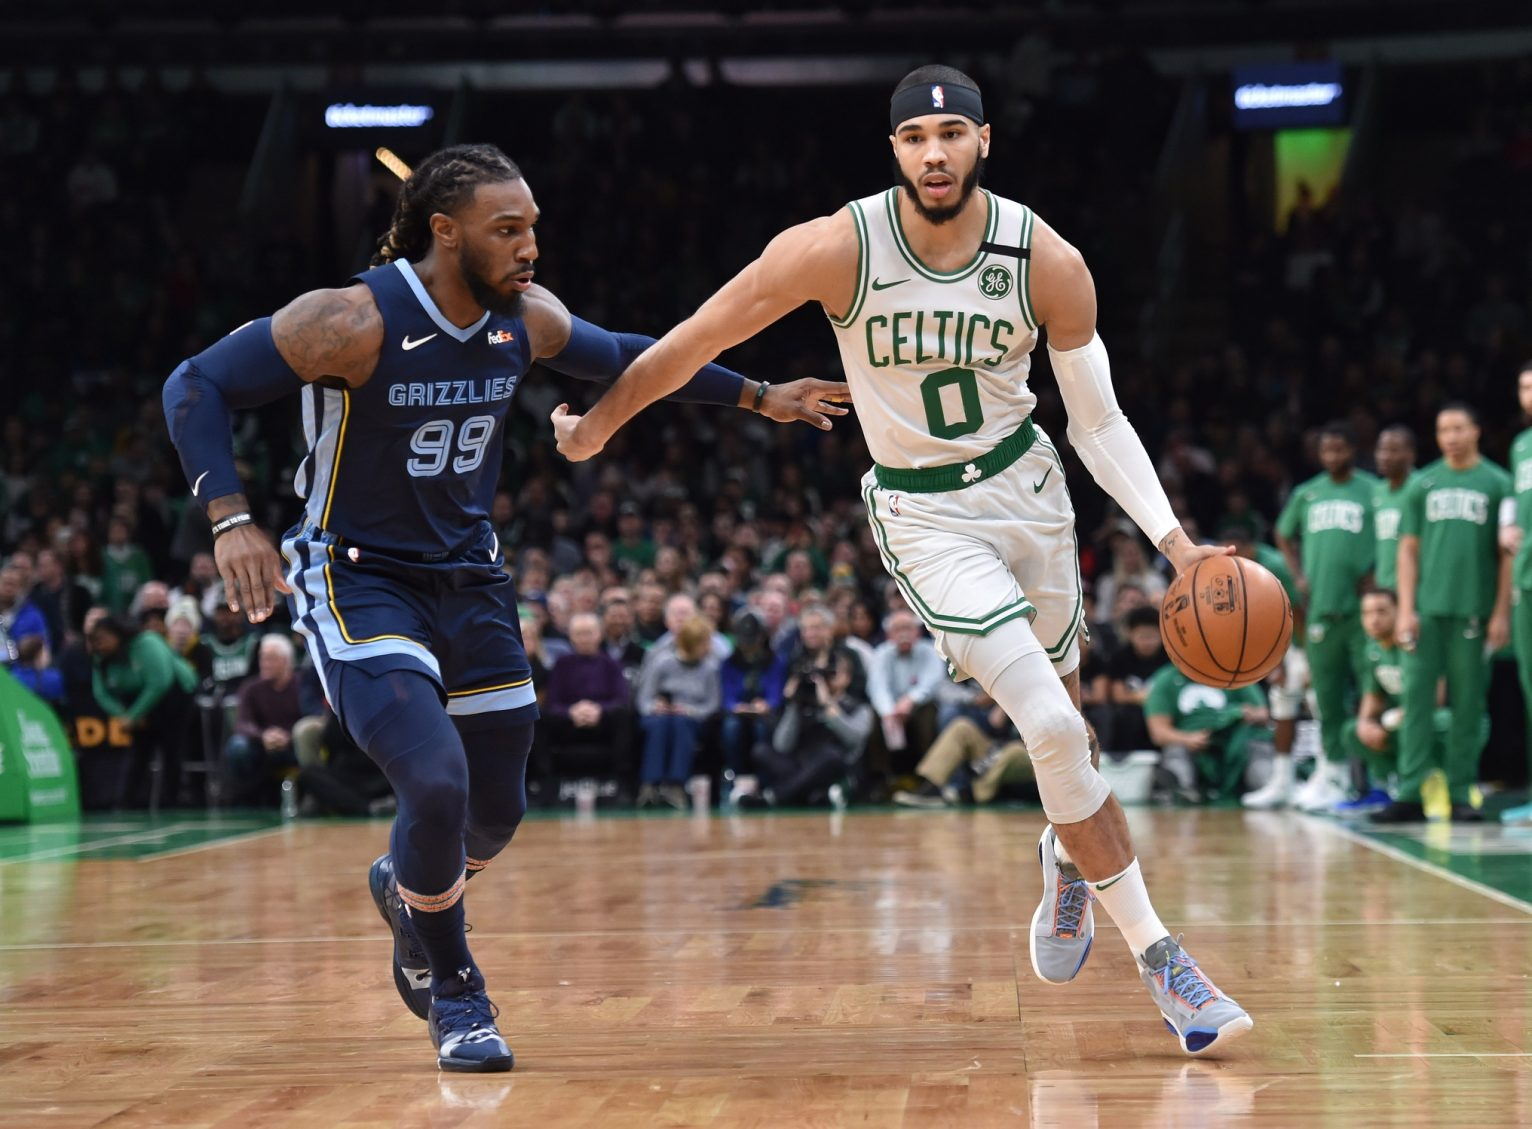 Rapid Recap: Celtics lure young Grizzlies into arena-sized bear trap for blowout win